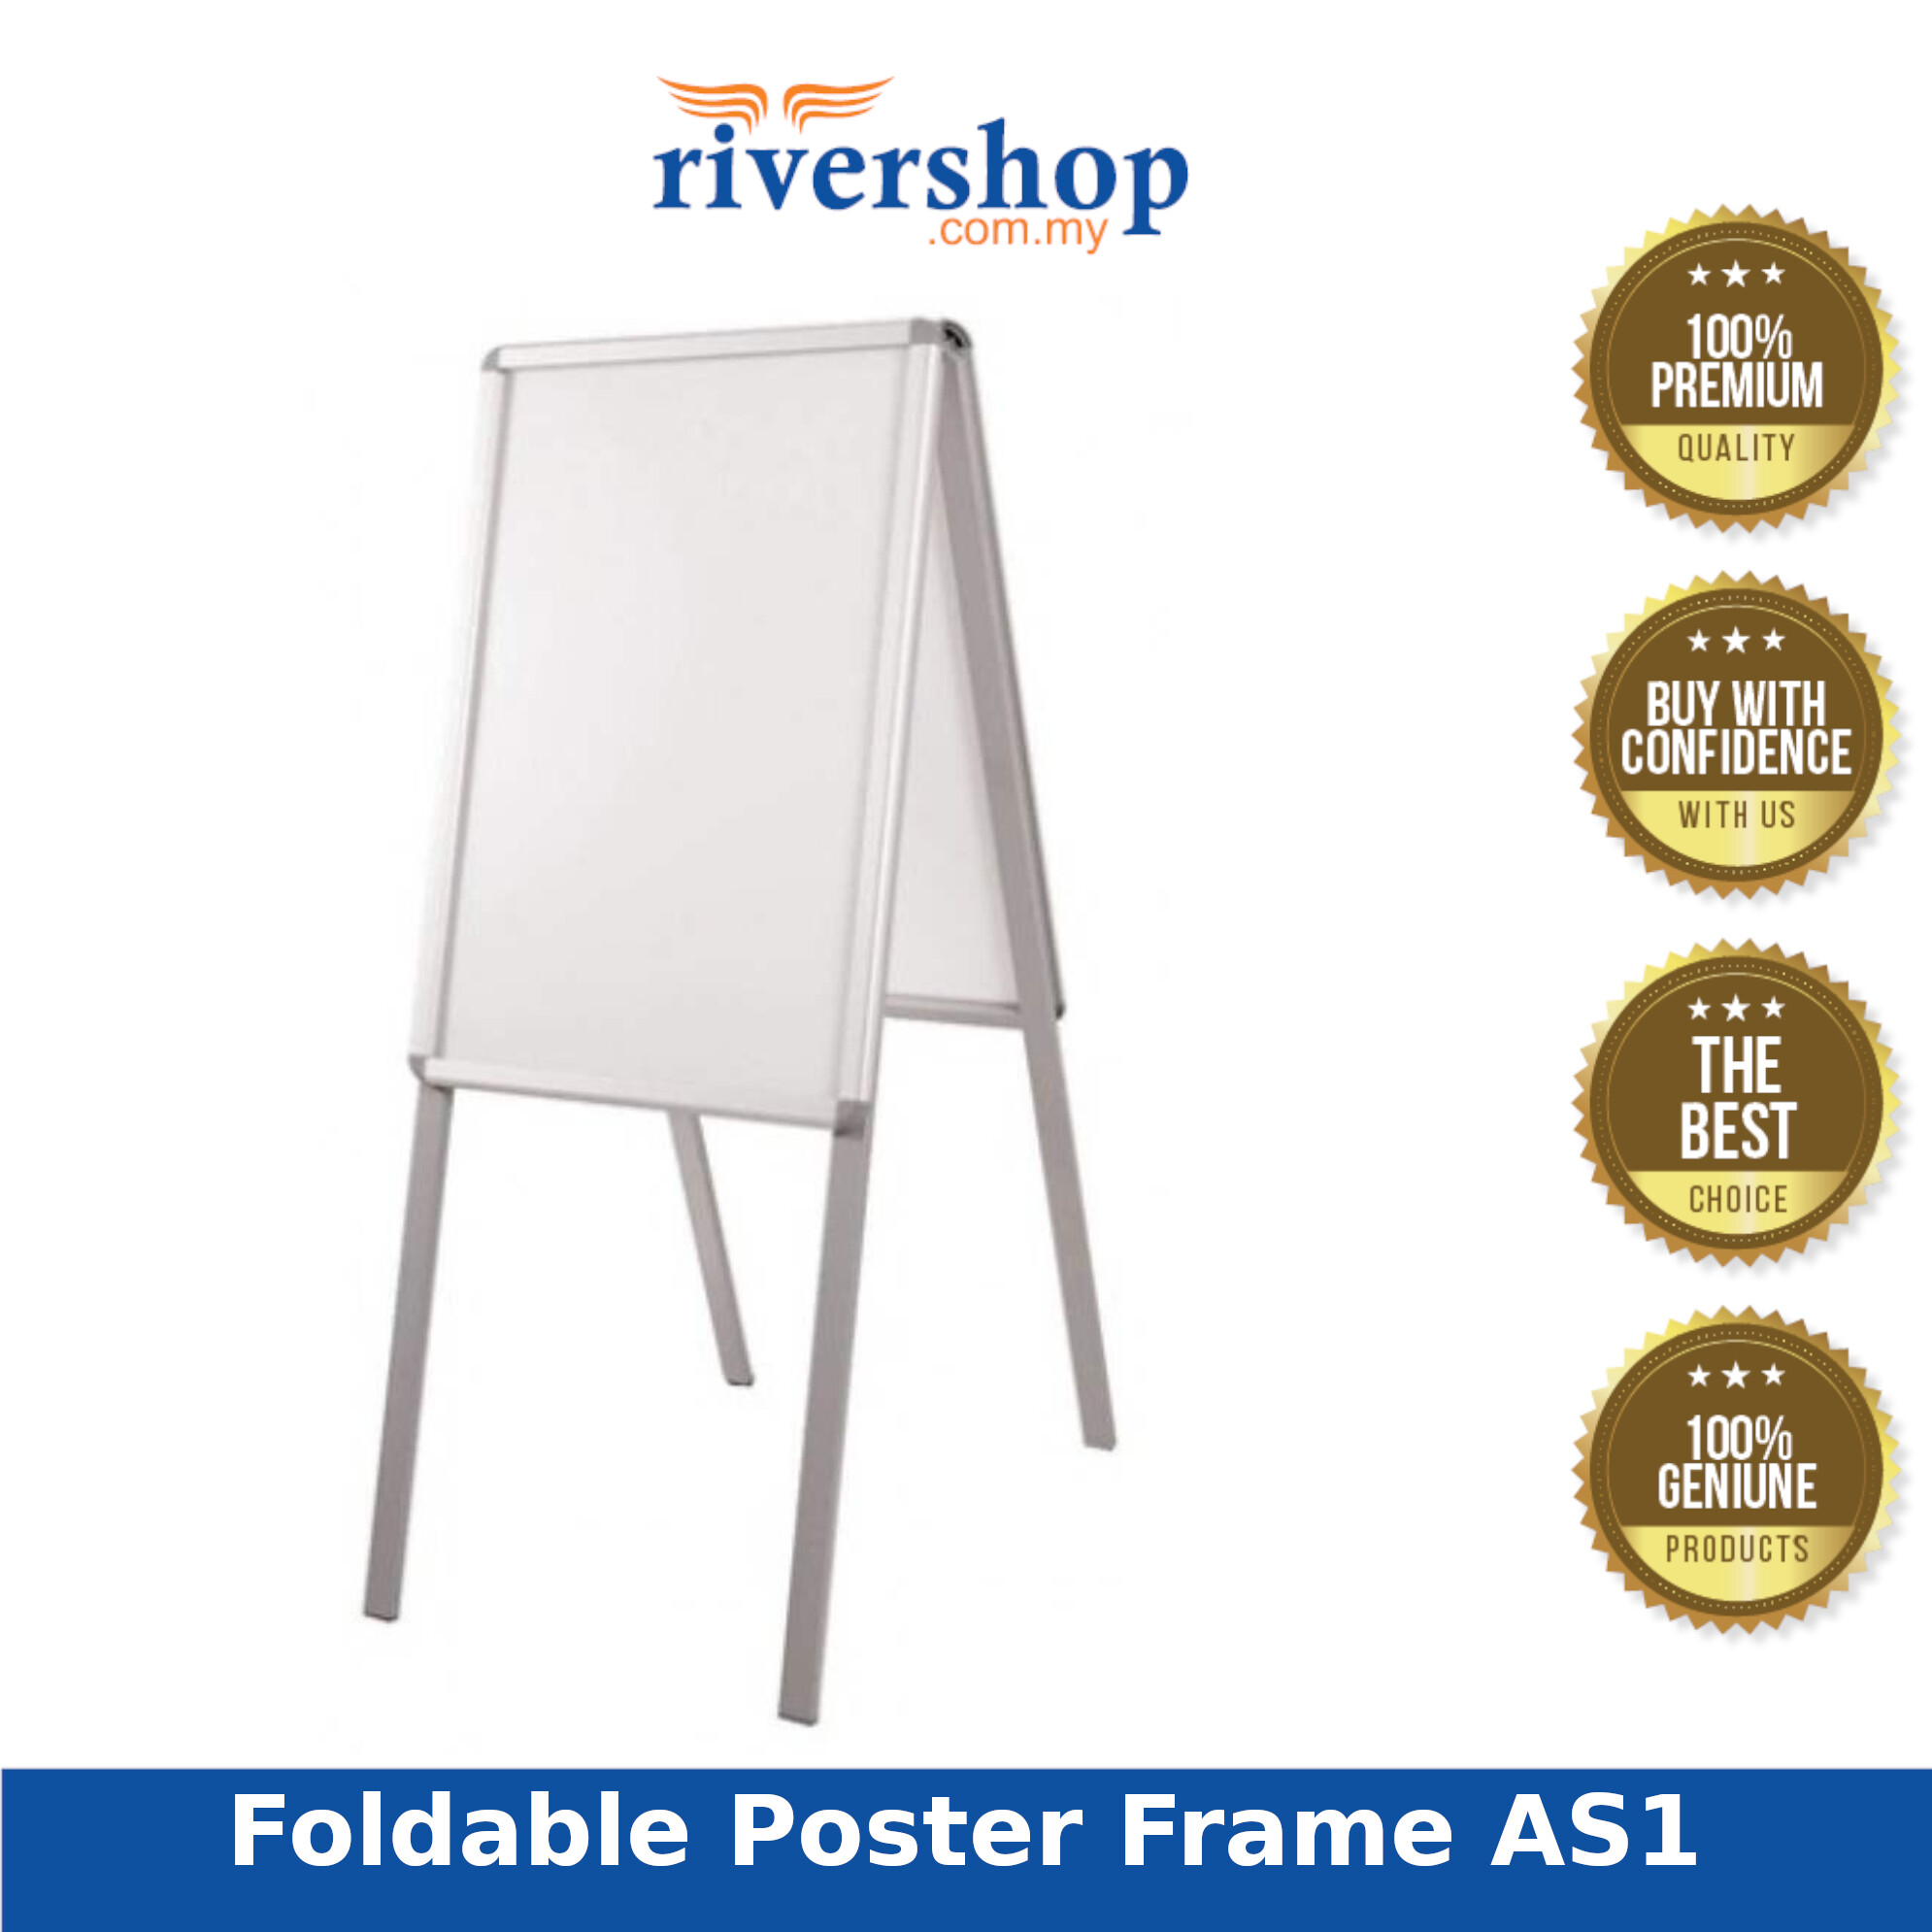 """Foldable Poster Frame AS1- Single sided 20""""x30"""" 58W x 136H x 79D (Item No: G03-12)"""